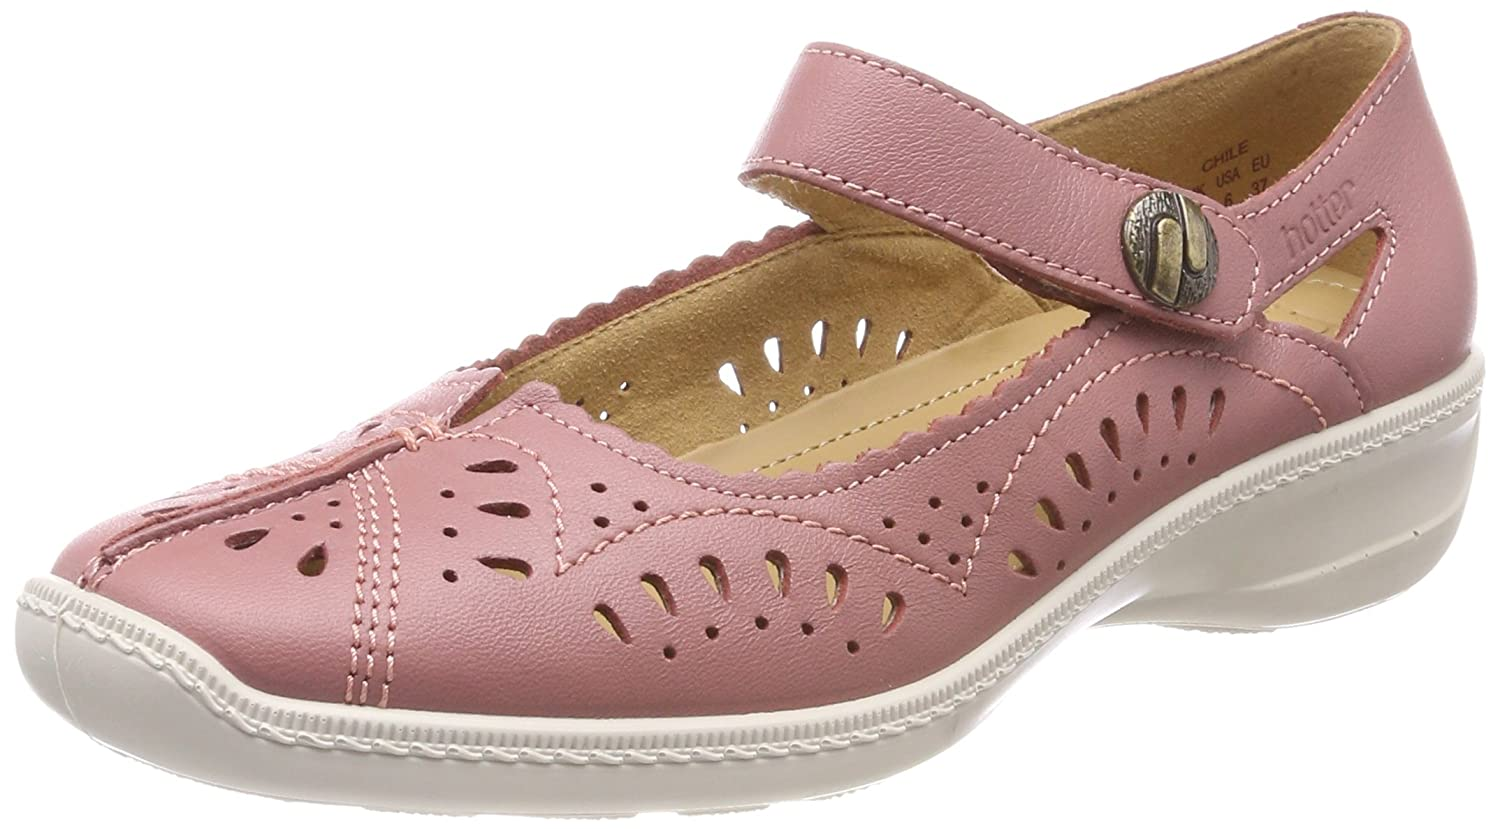 Hotter Damen 082) Chile Mary Jane Halbschuhe, beige Pink (Salmon 082) Damen d0e1a2